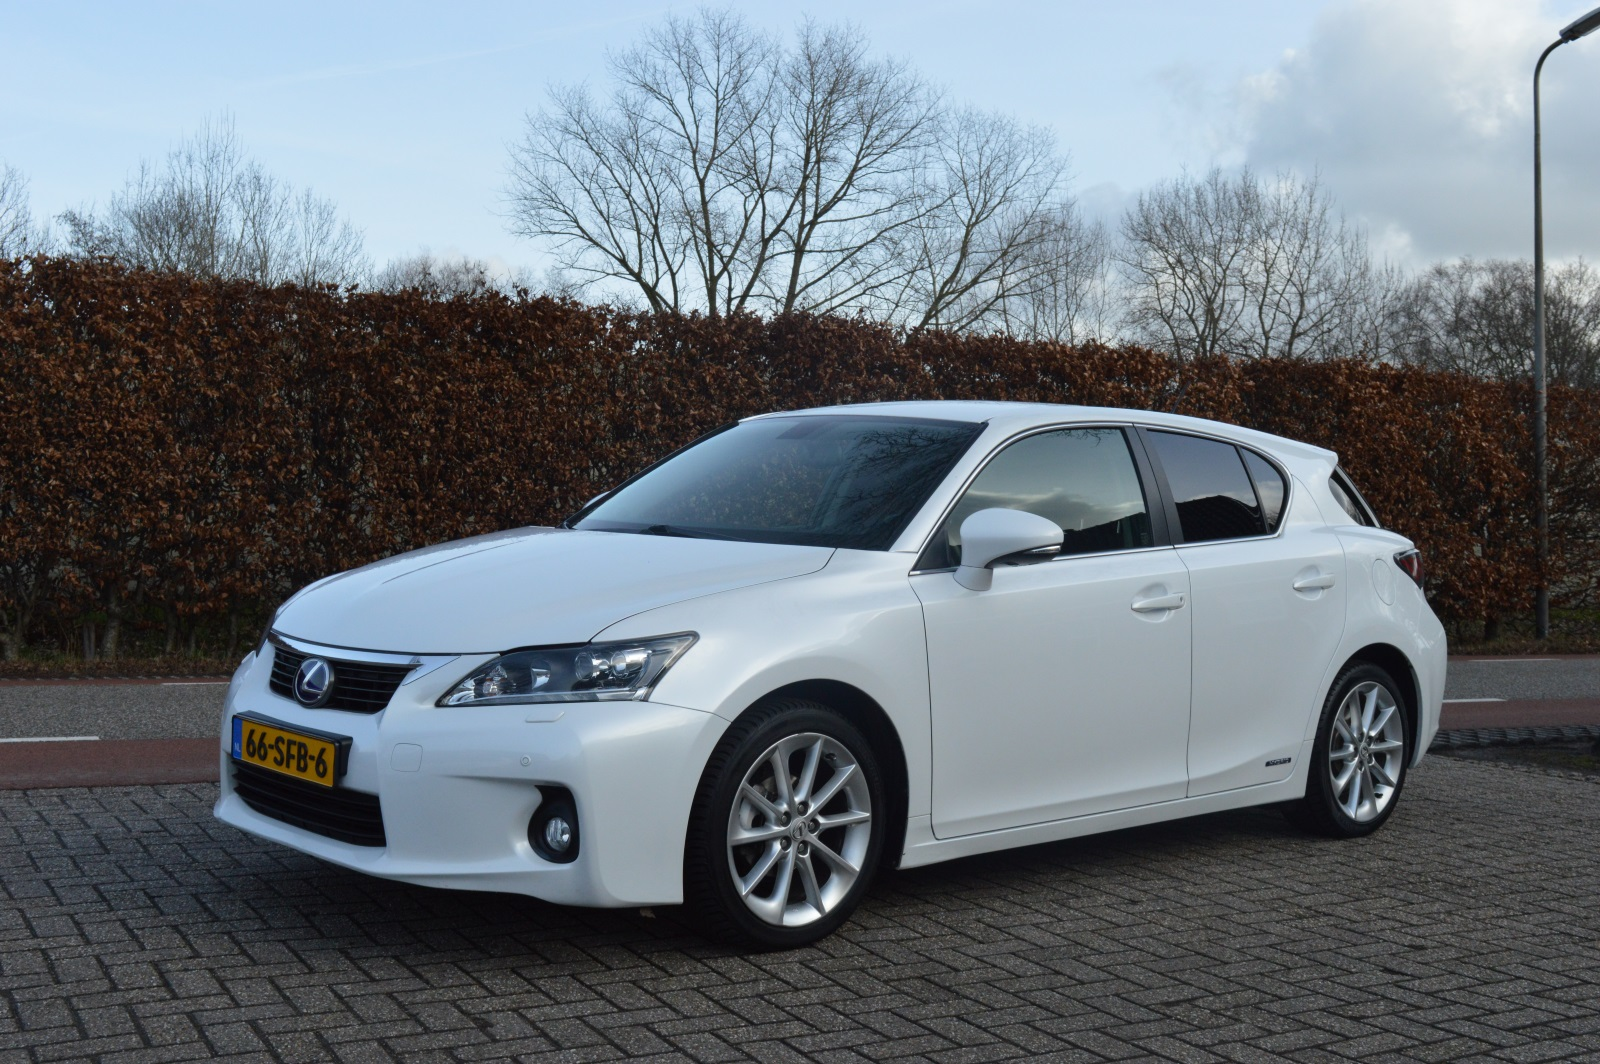 lexus ct 200h luxury line autobedrijf slager. Black Bedroom Furniture Sets. Home Design Ideas